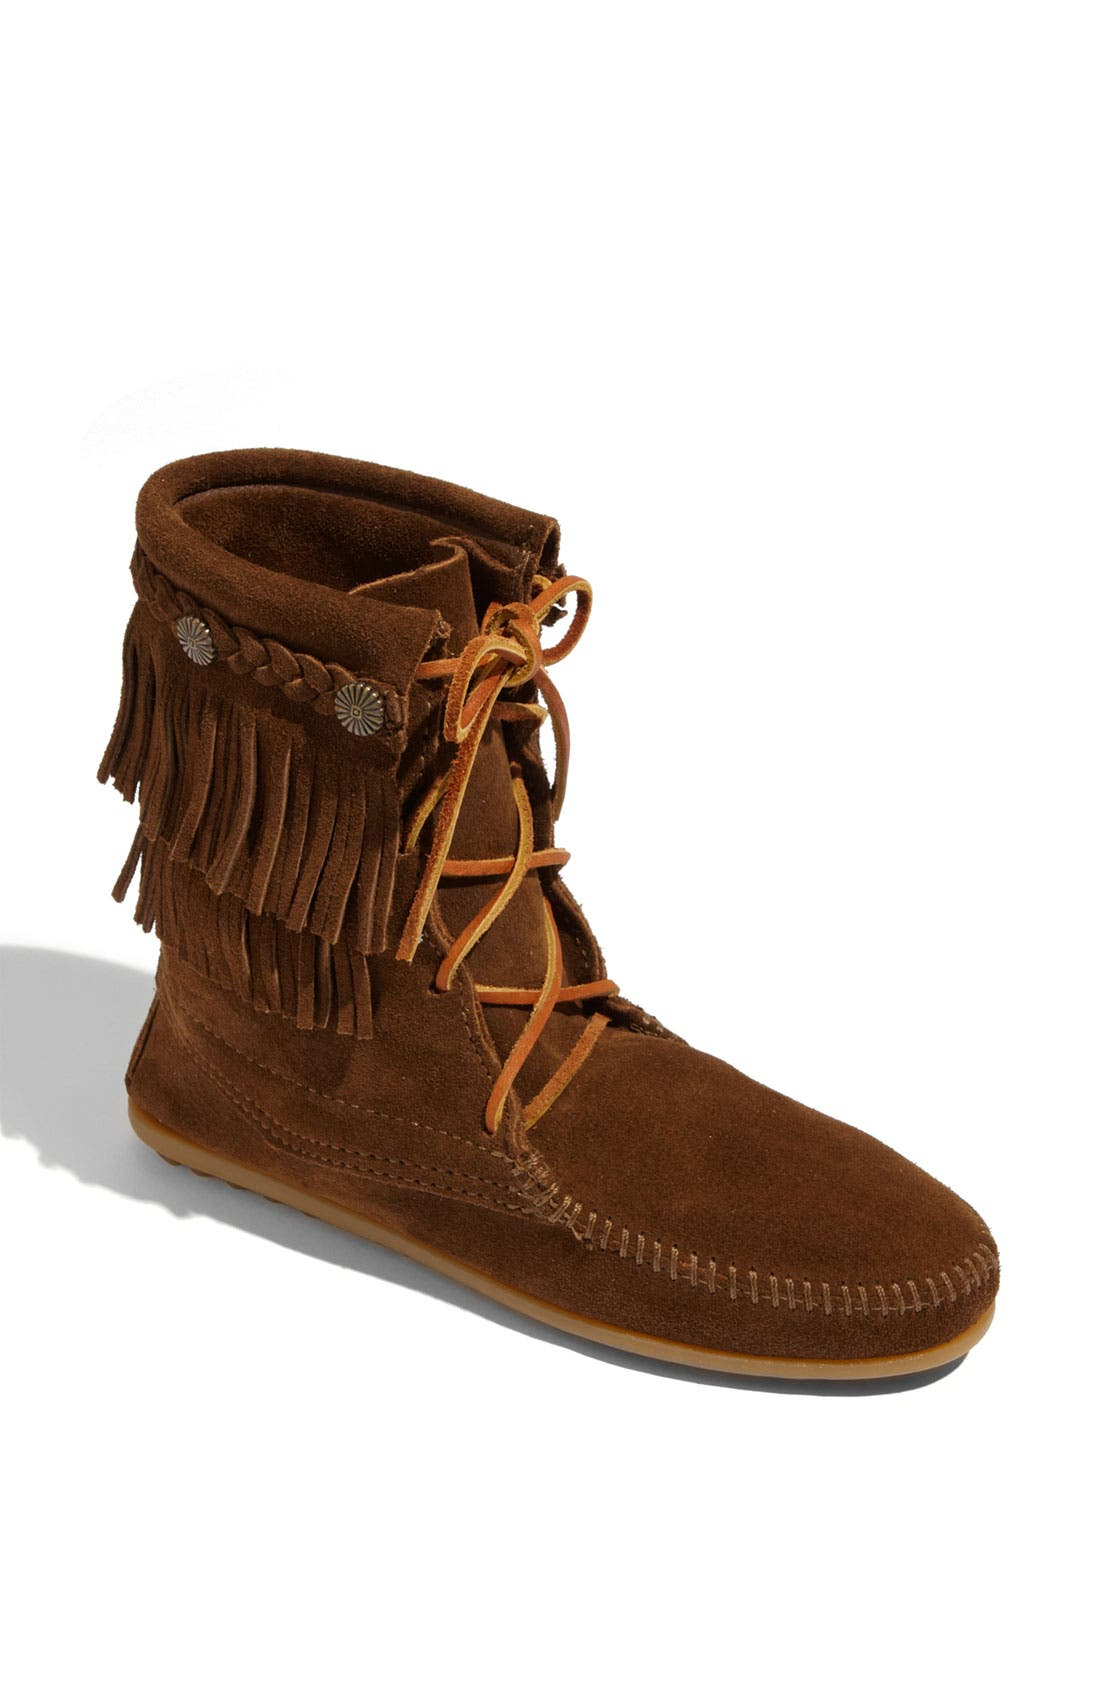 Minnetonka 'Tramper' Double Fringe Moccasin Boot (Women)